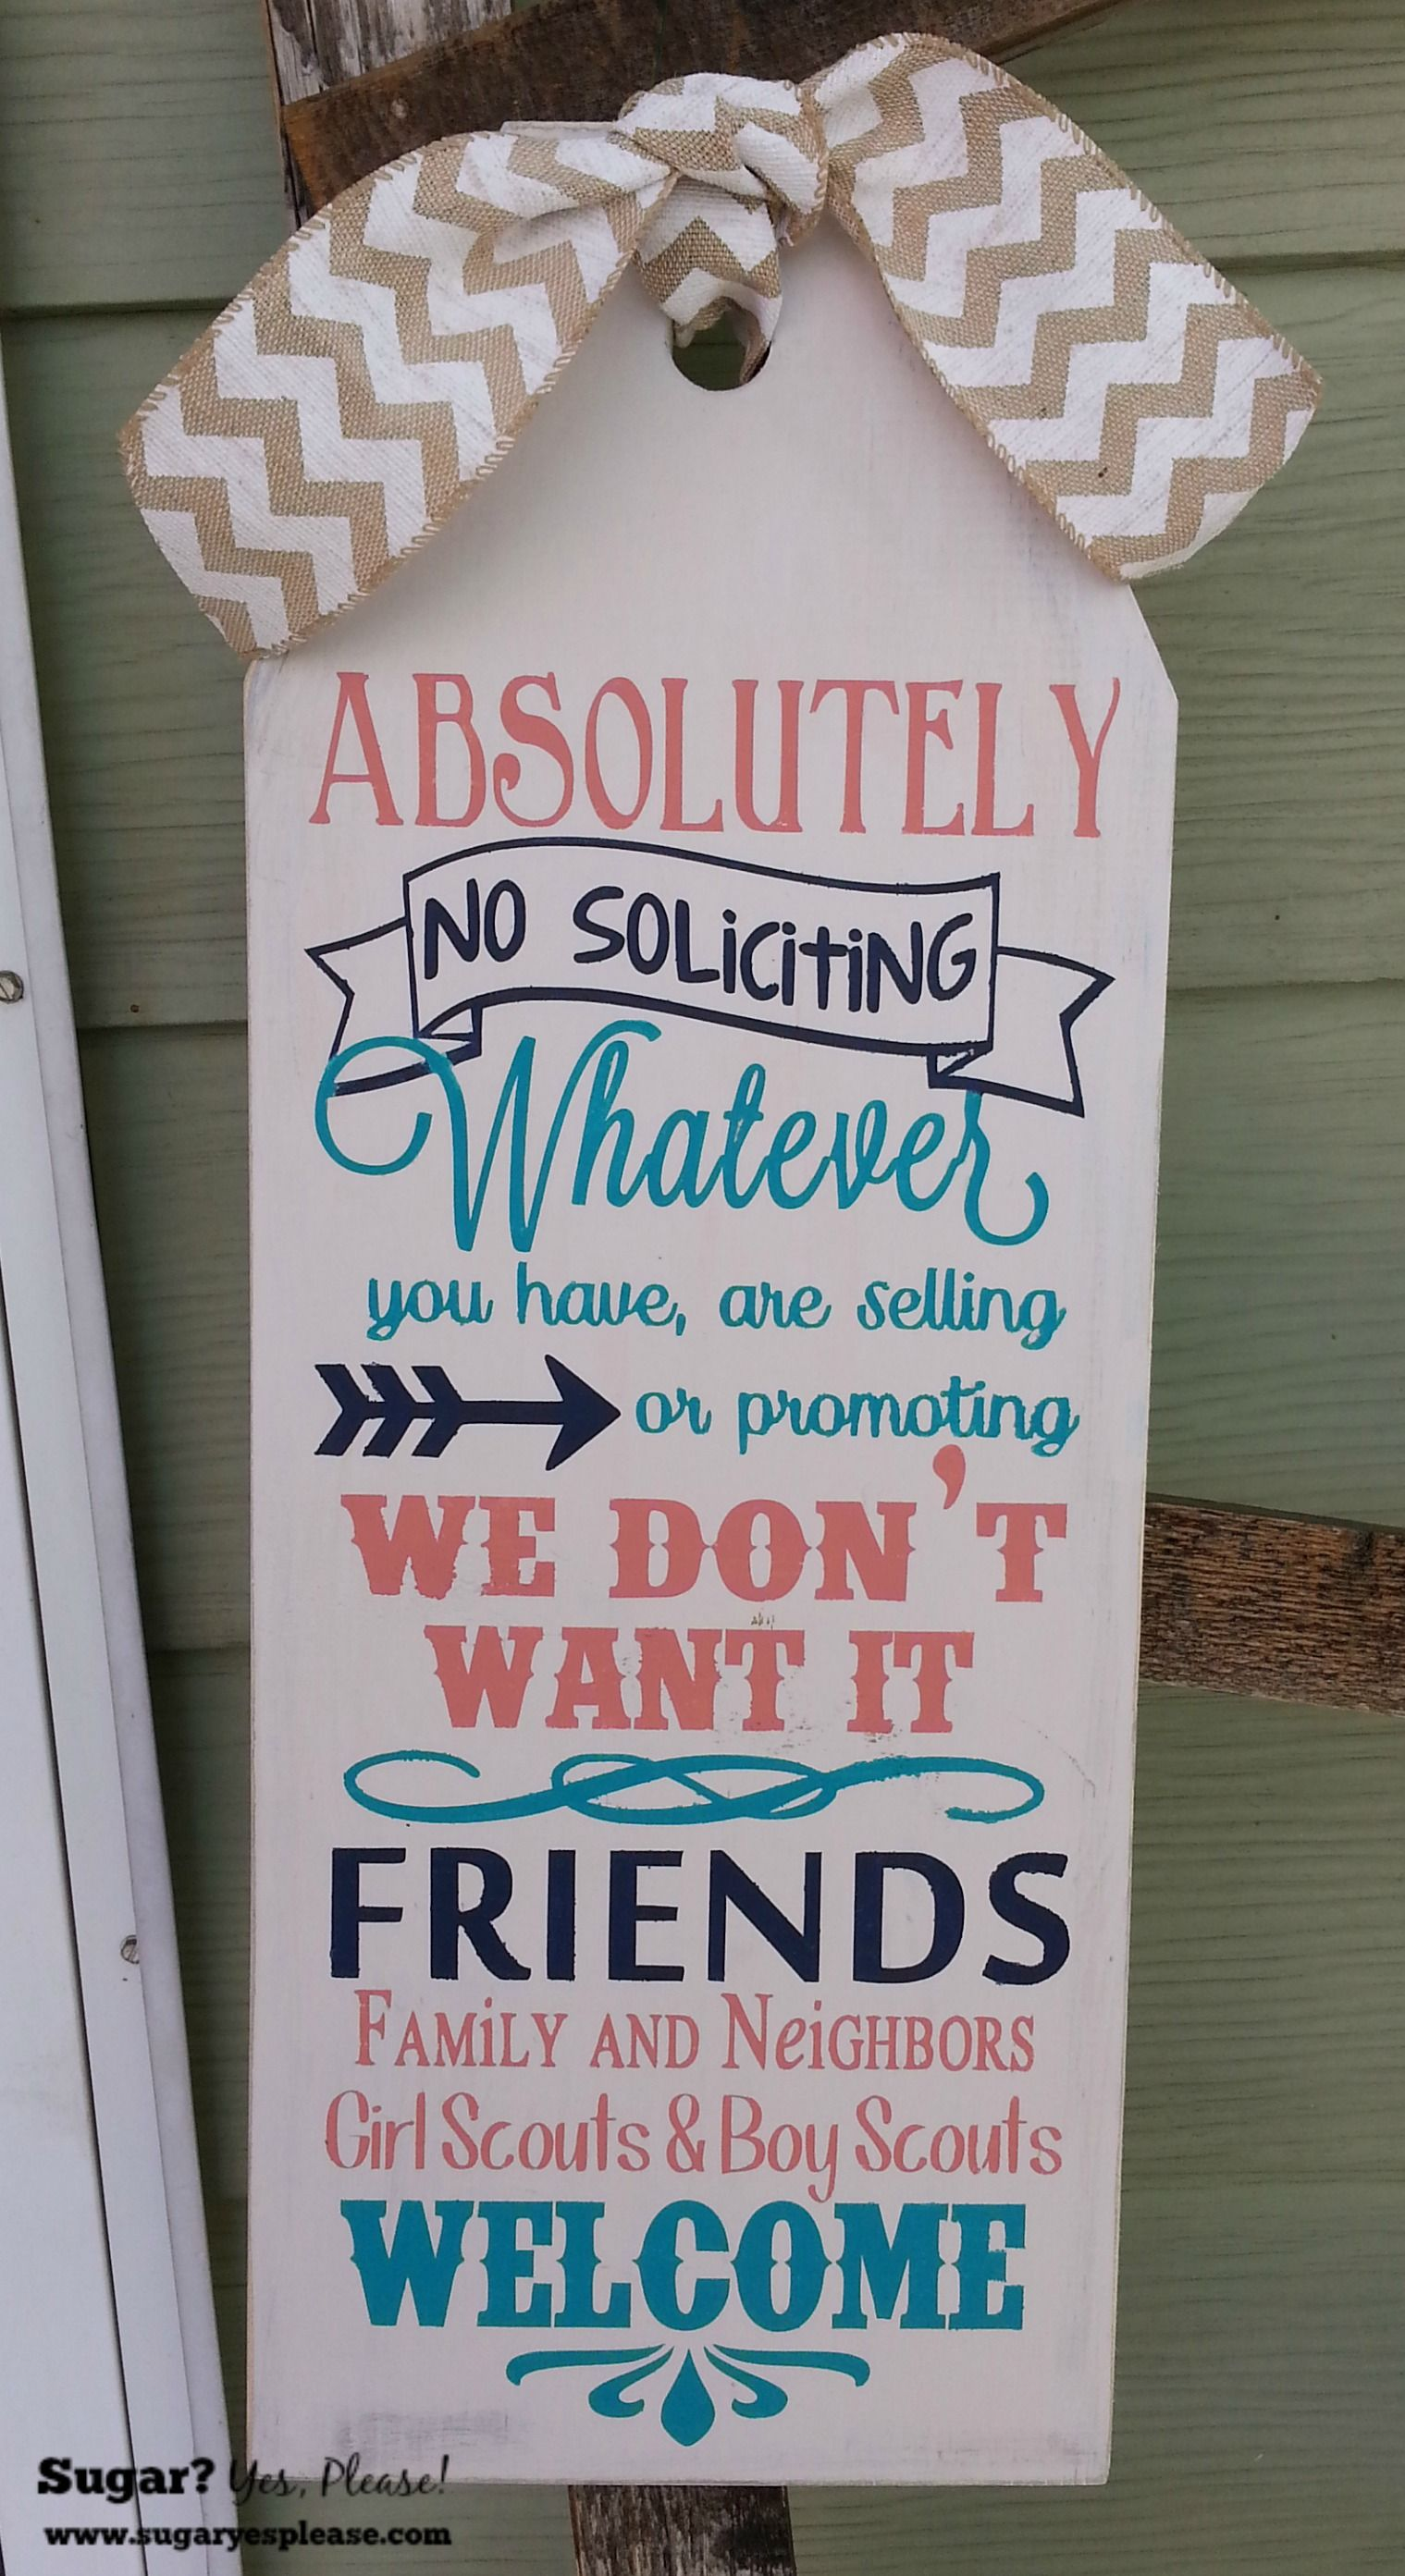 52 Diy Pallet Signs Ideas With Great Quotes Big Diy Ideas Pallet Signs Diy Pallet Signs Pallet Diy